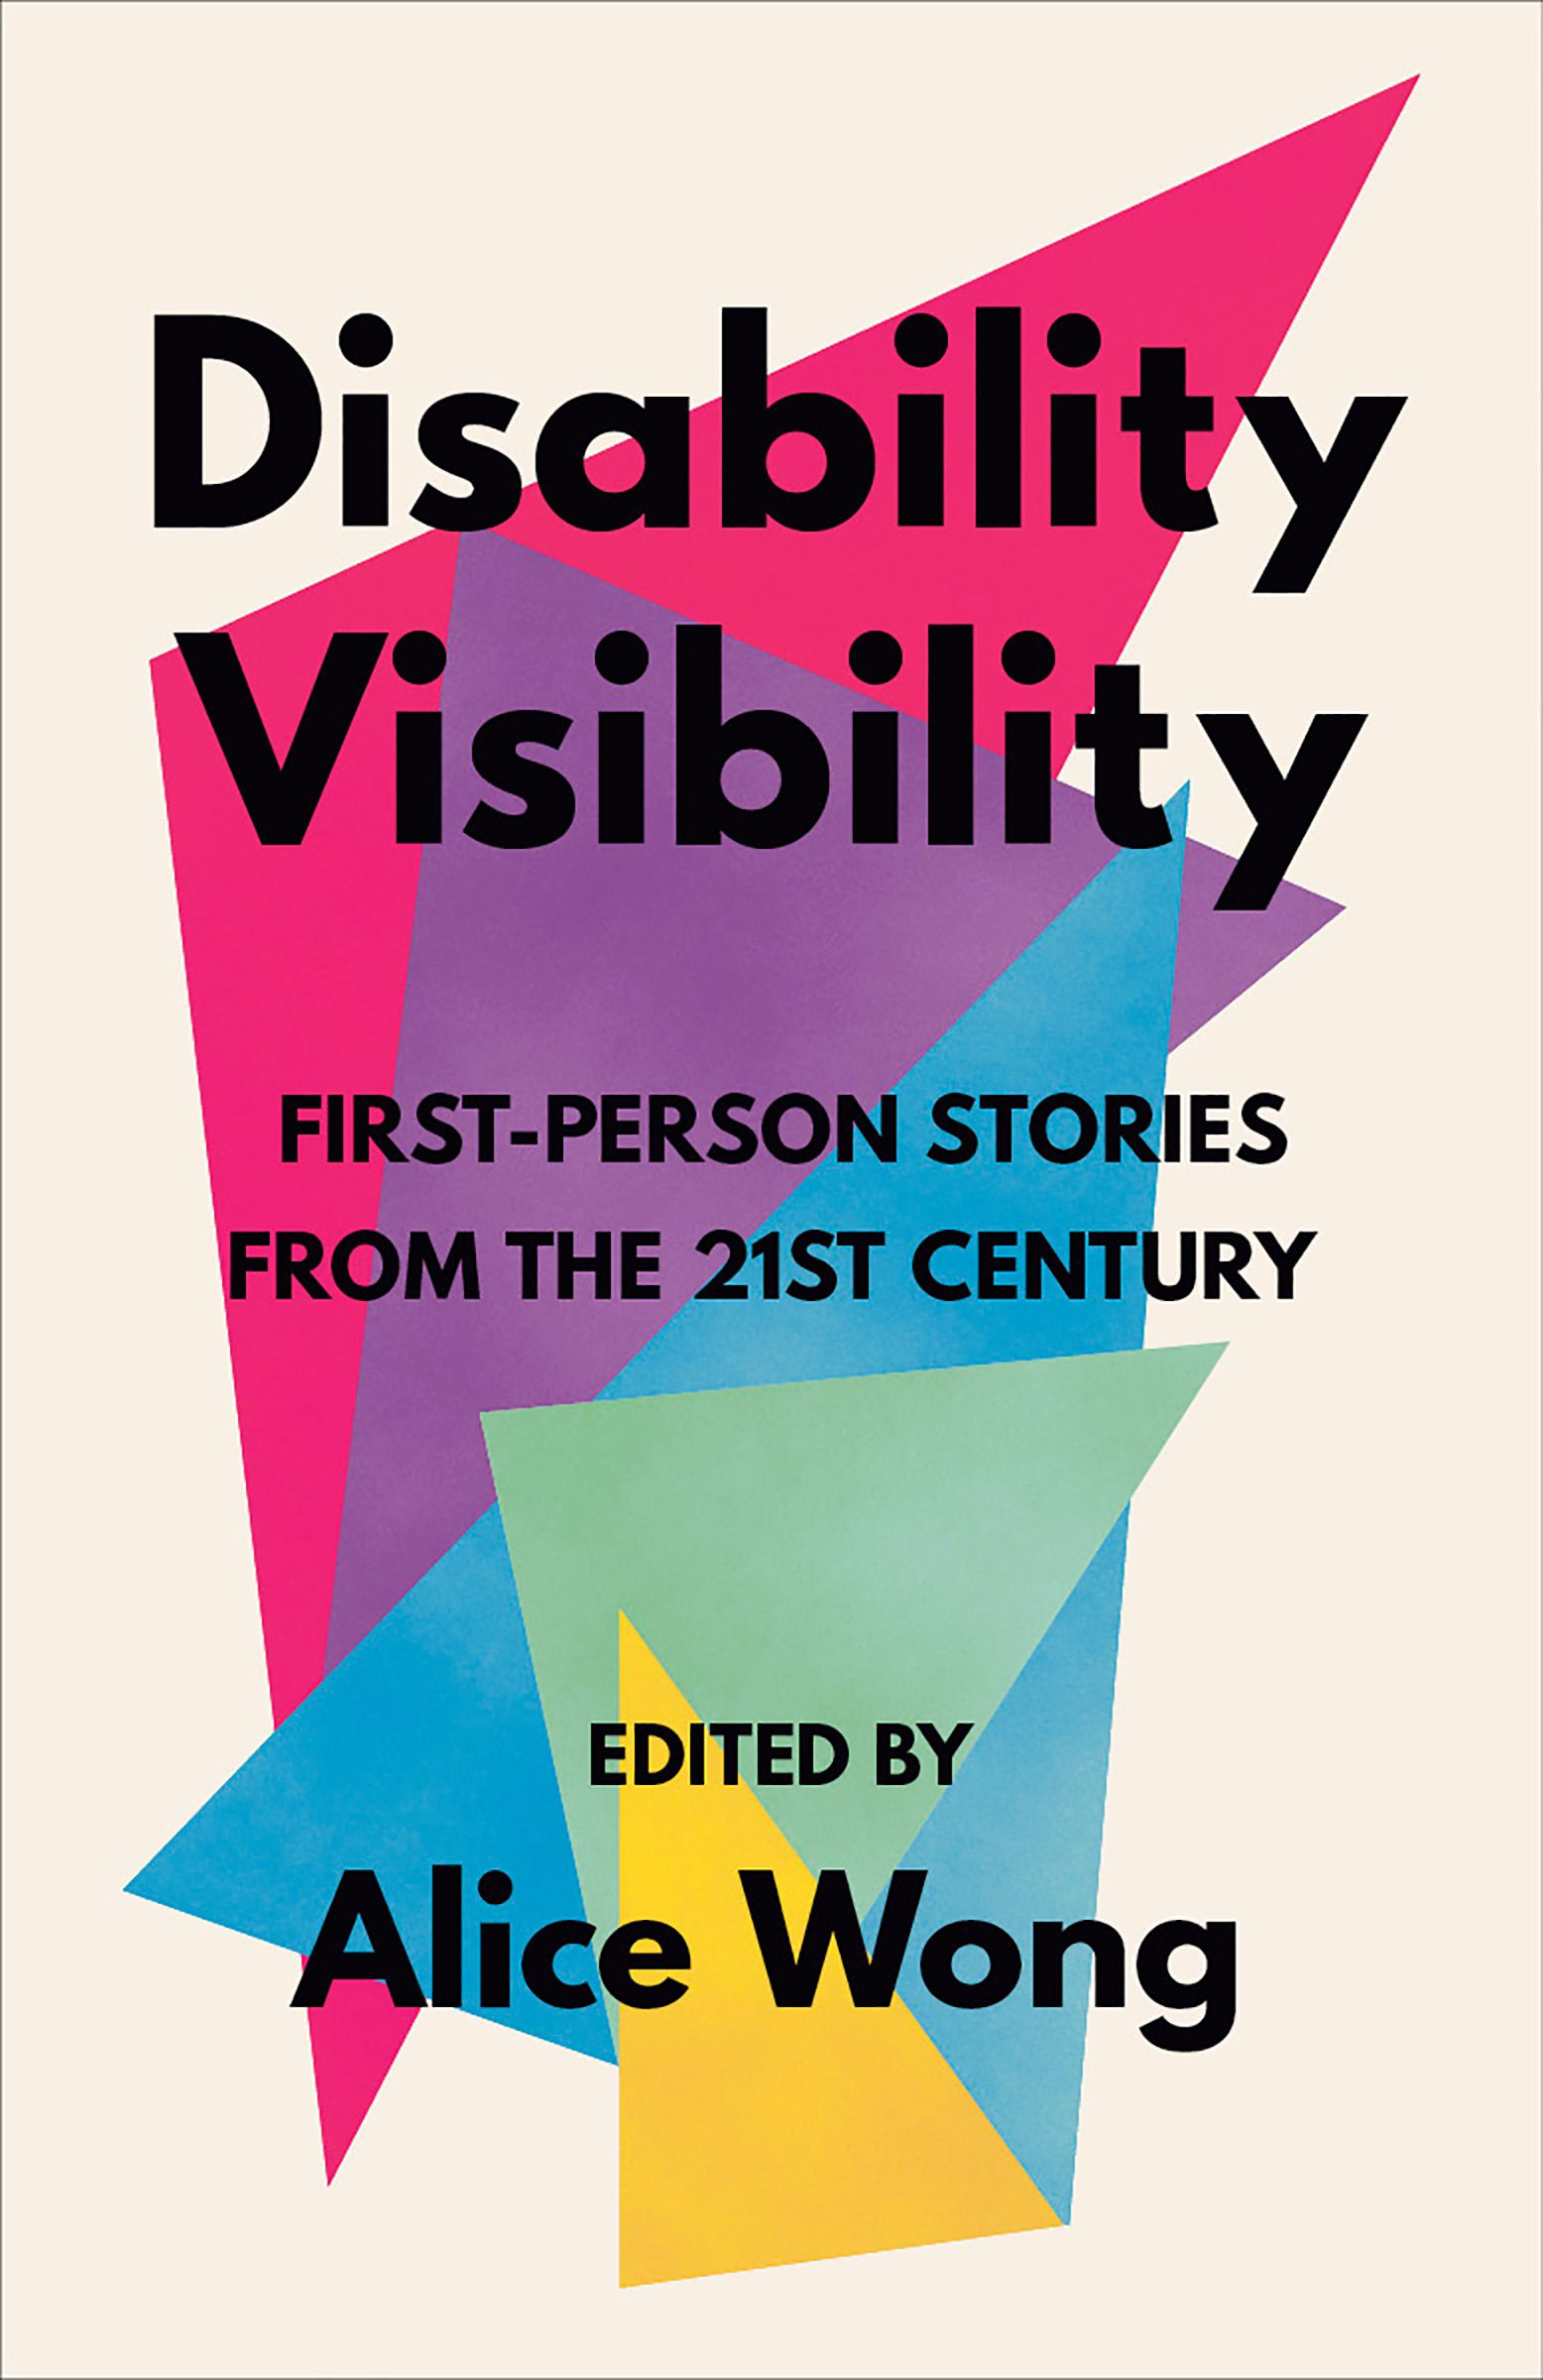 disability visibility book cover.jpg.optimal